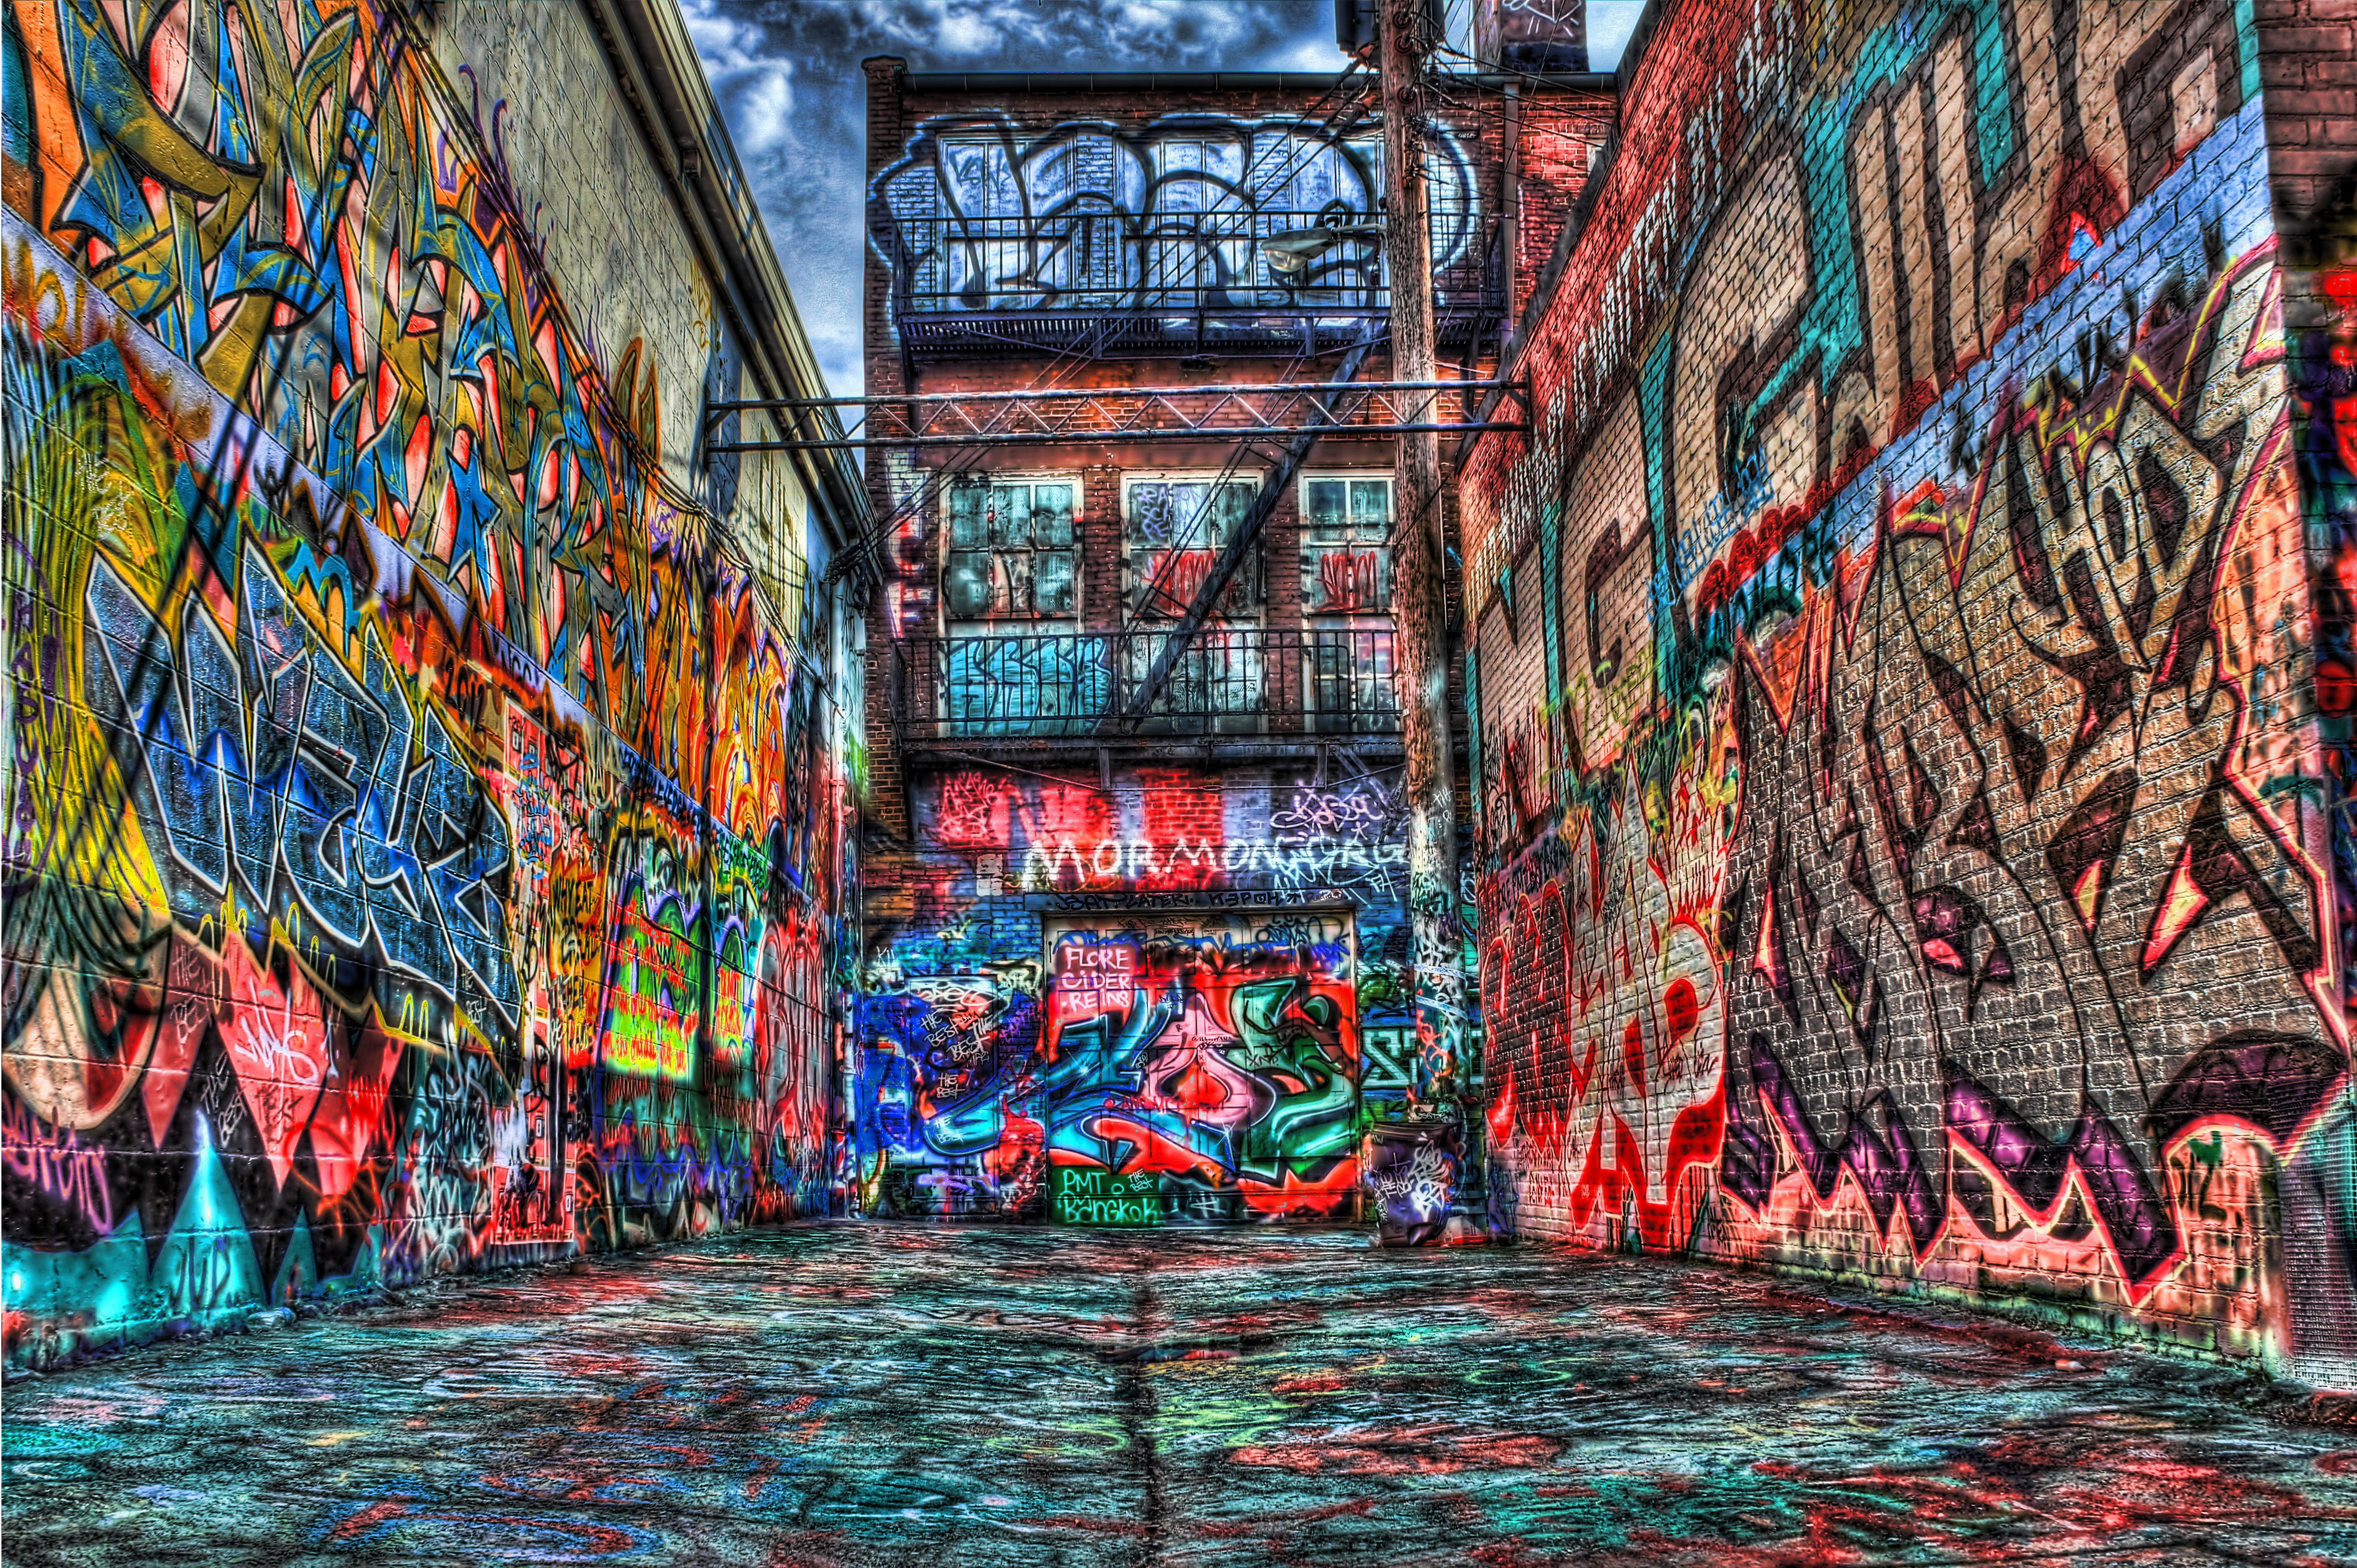 Graffiti art information - Find This Pin And More On Street Art Plus By Bradhughes148 Graffiti Alley